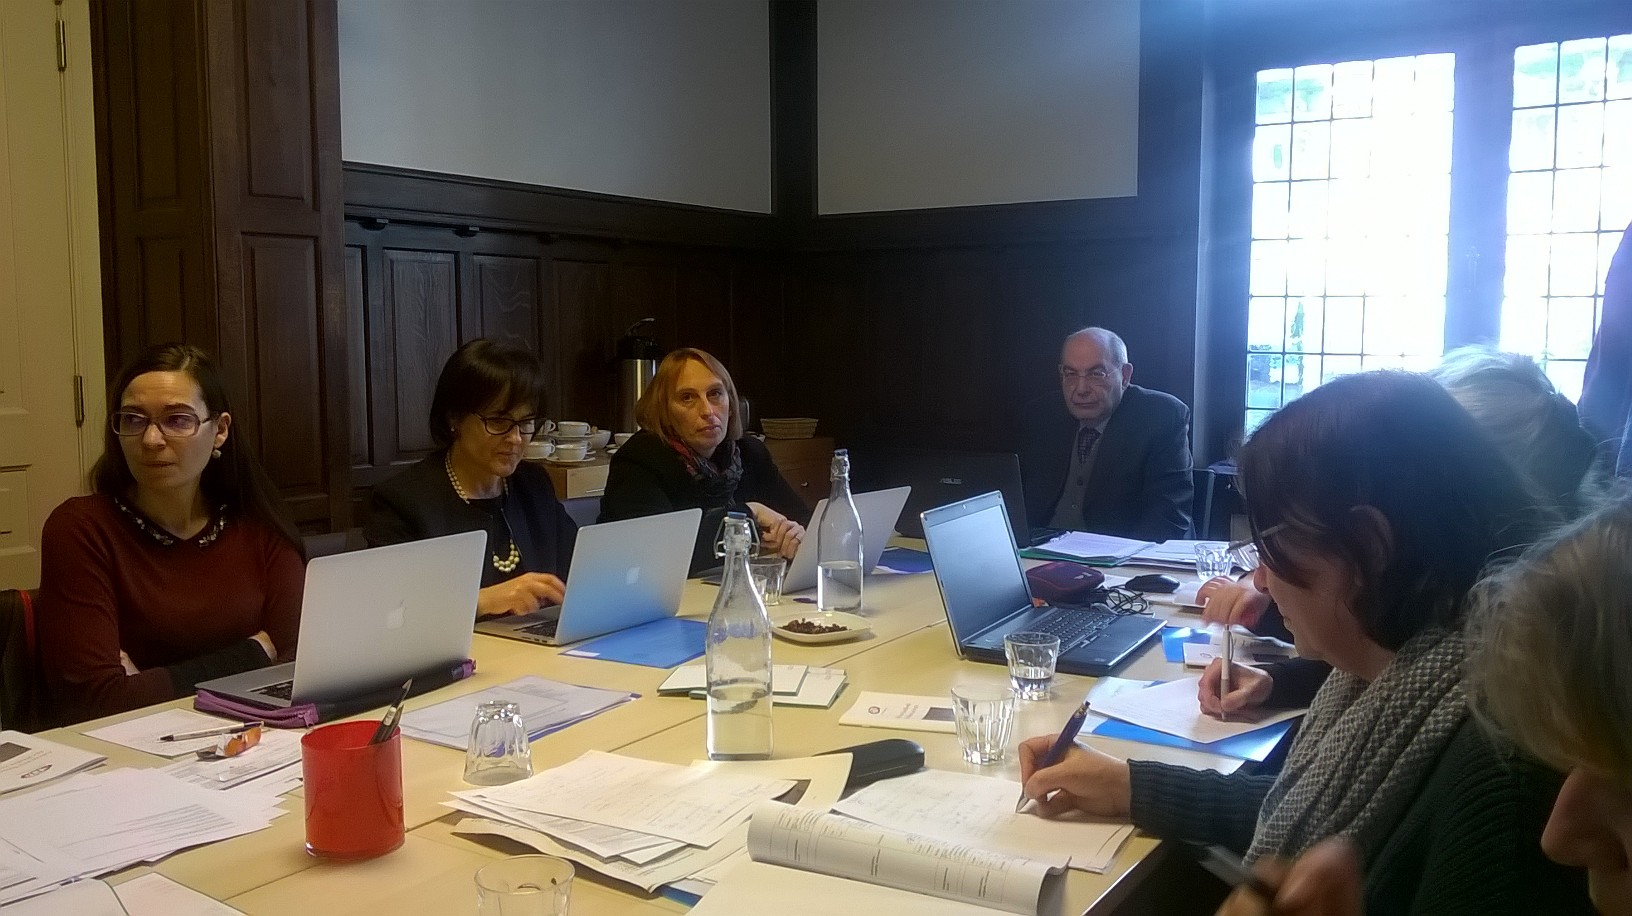 Ad hoc meeting foto 2 11.03.2016 5 Brussels Meeting Pro Copy